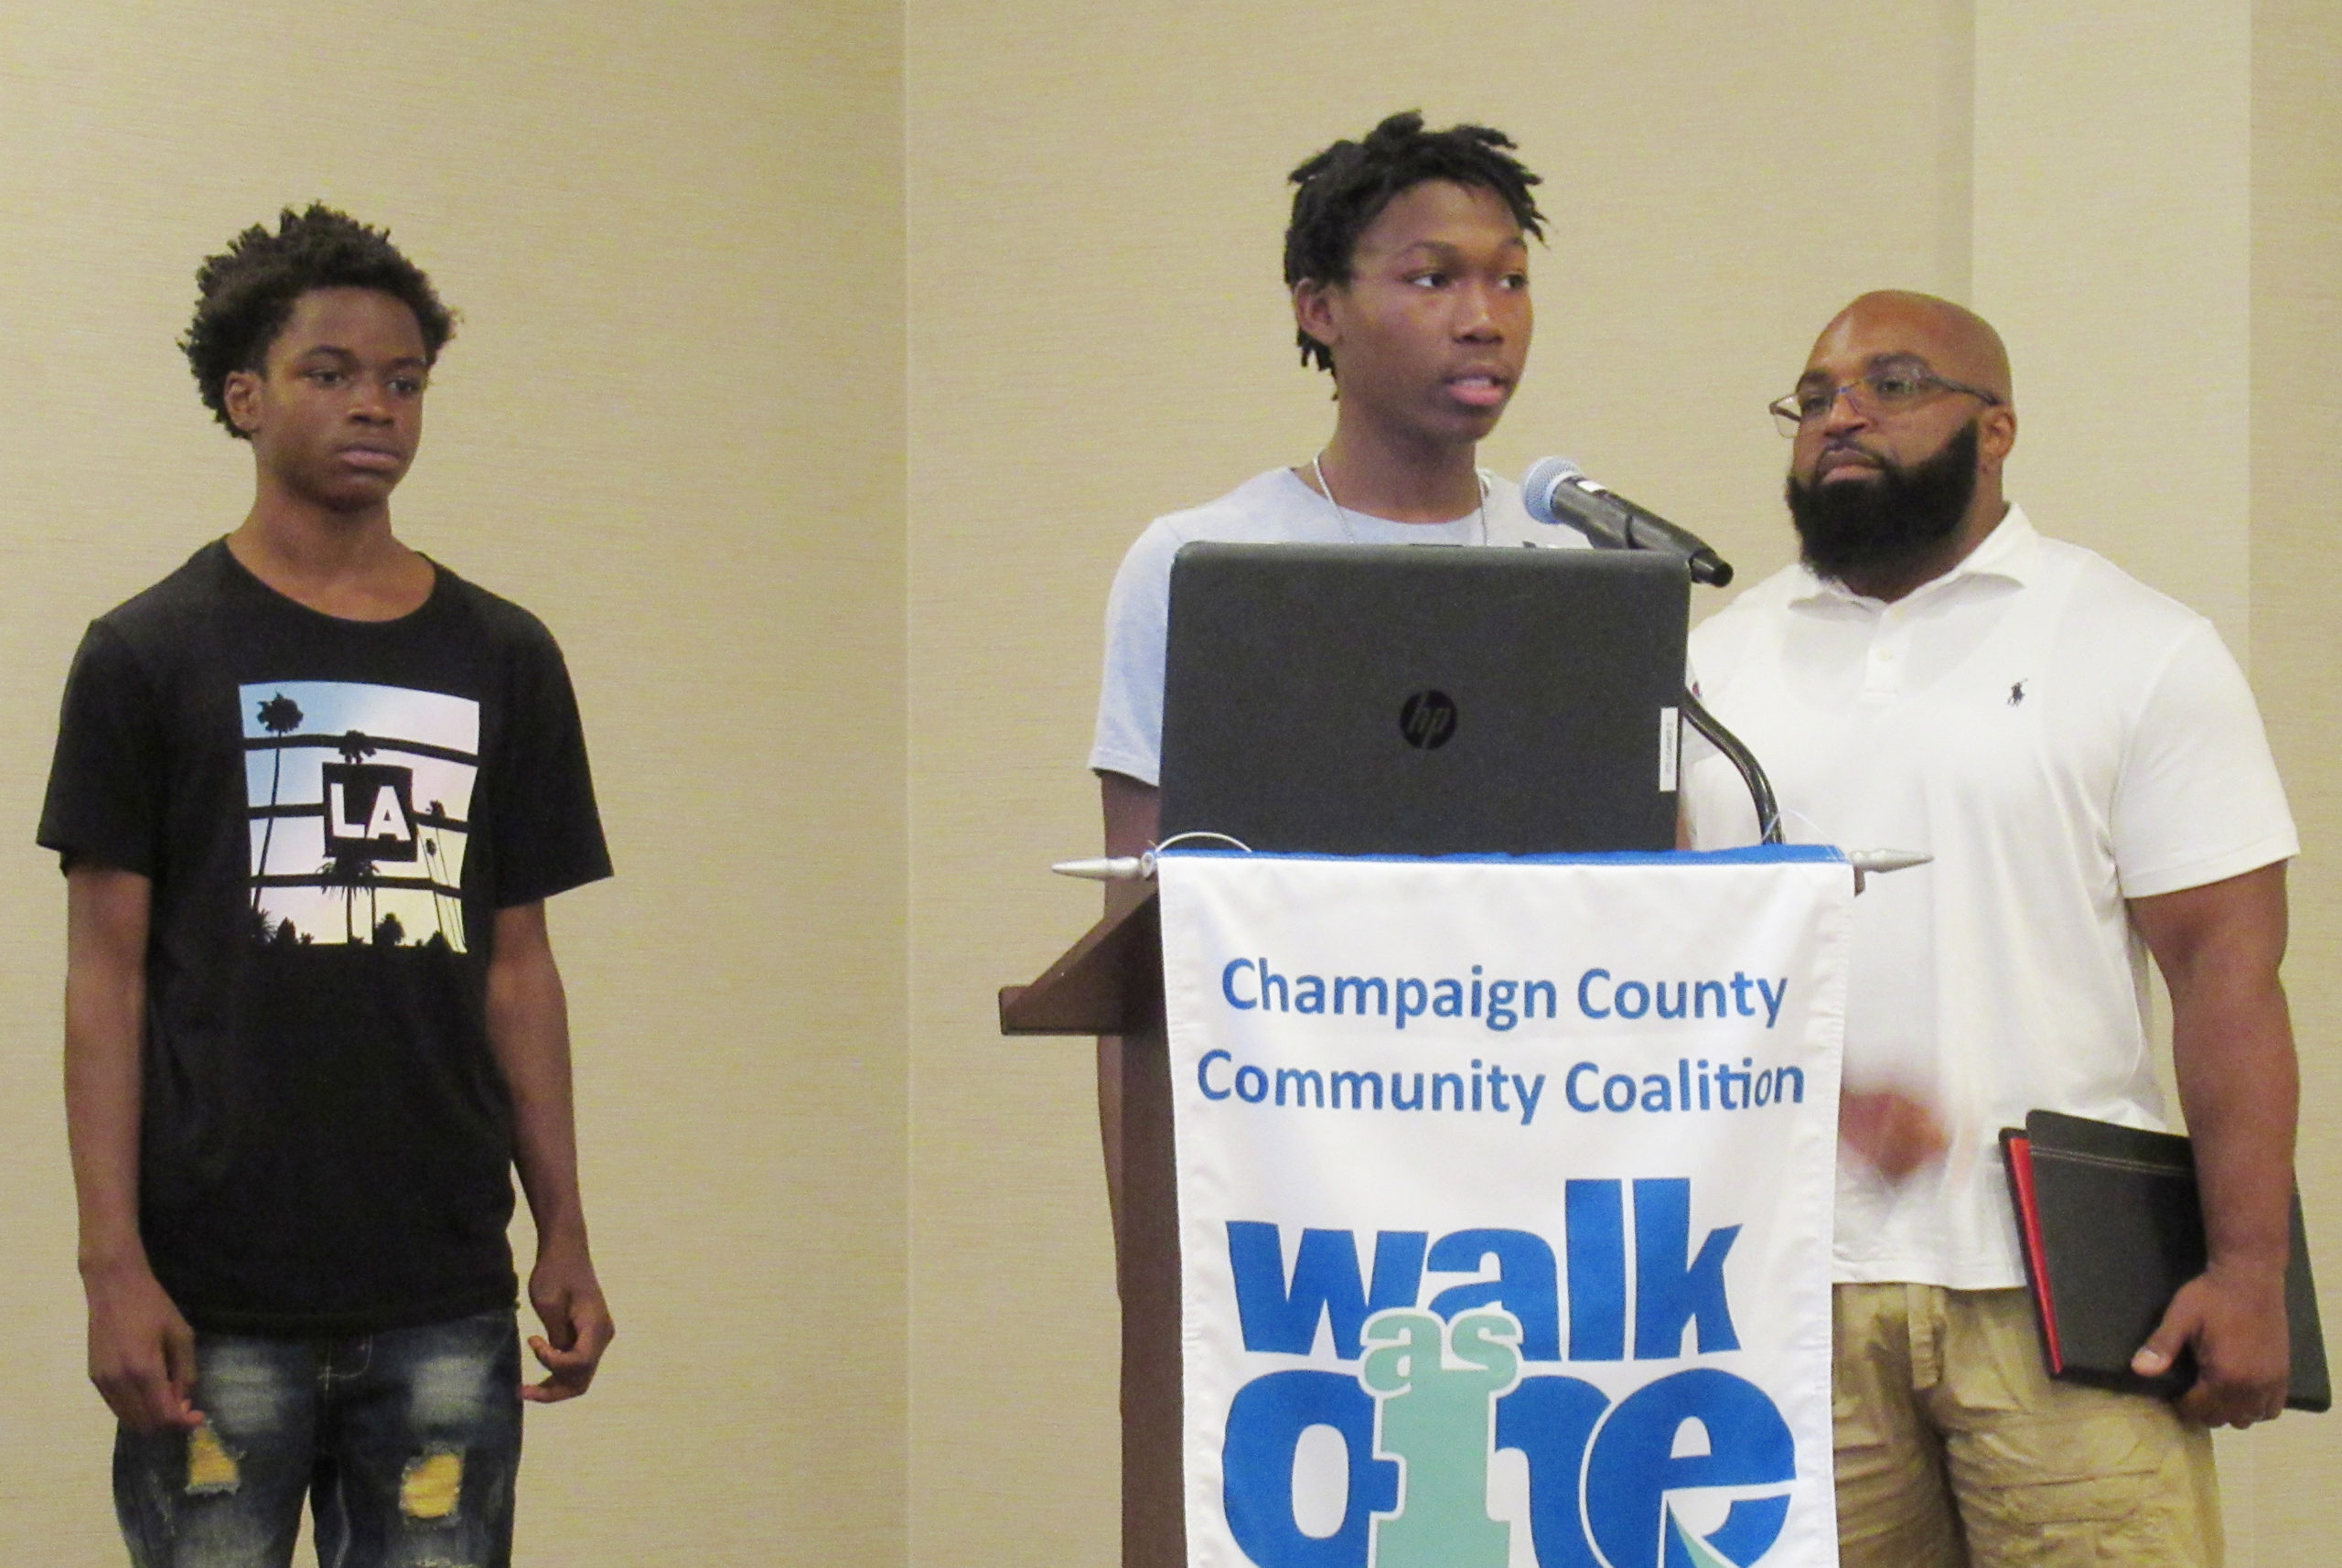 young men and adult at podium